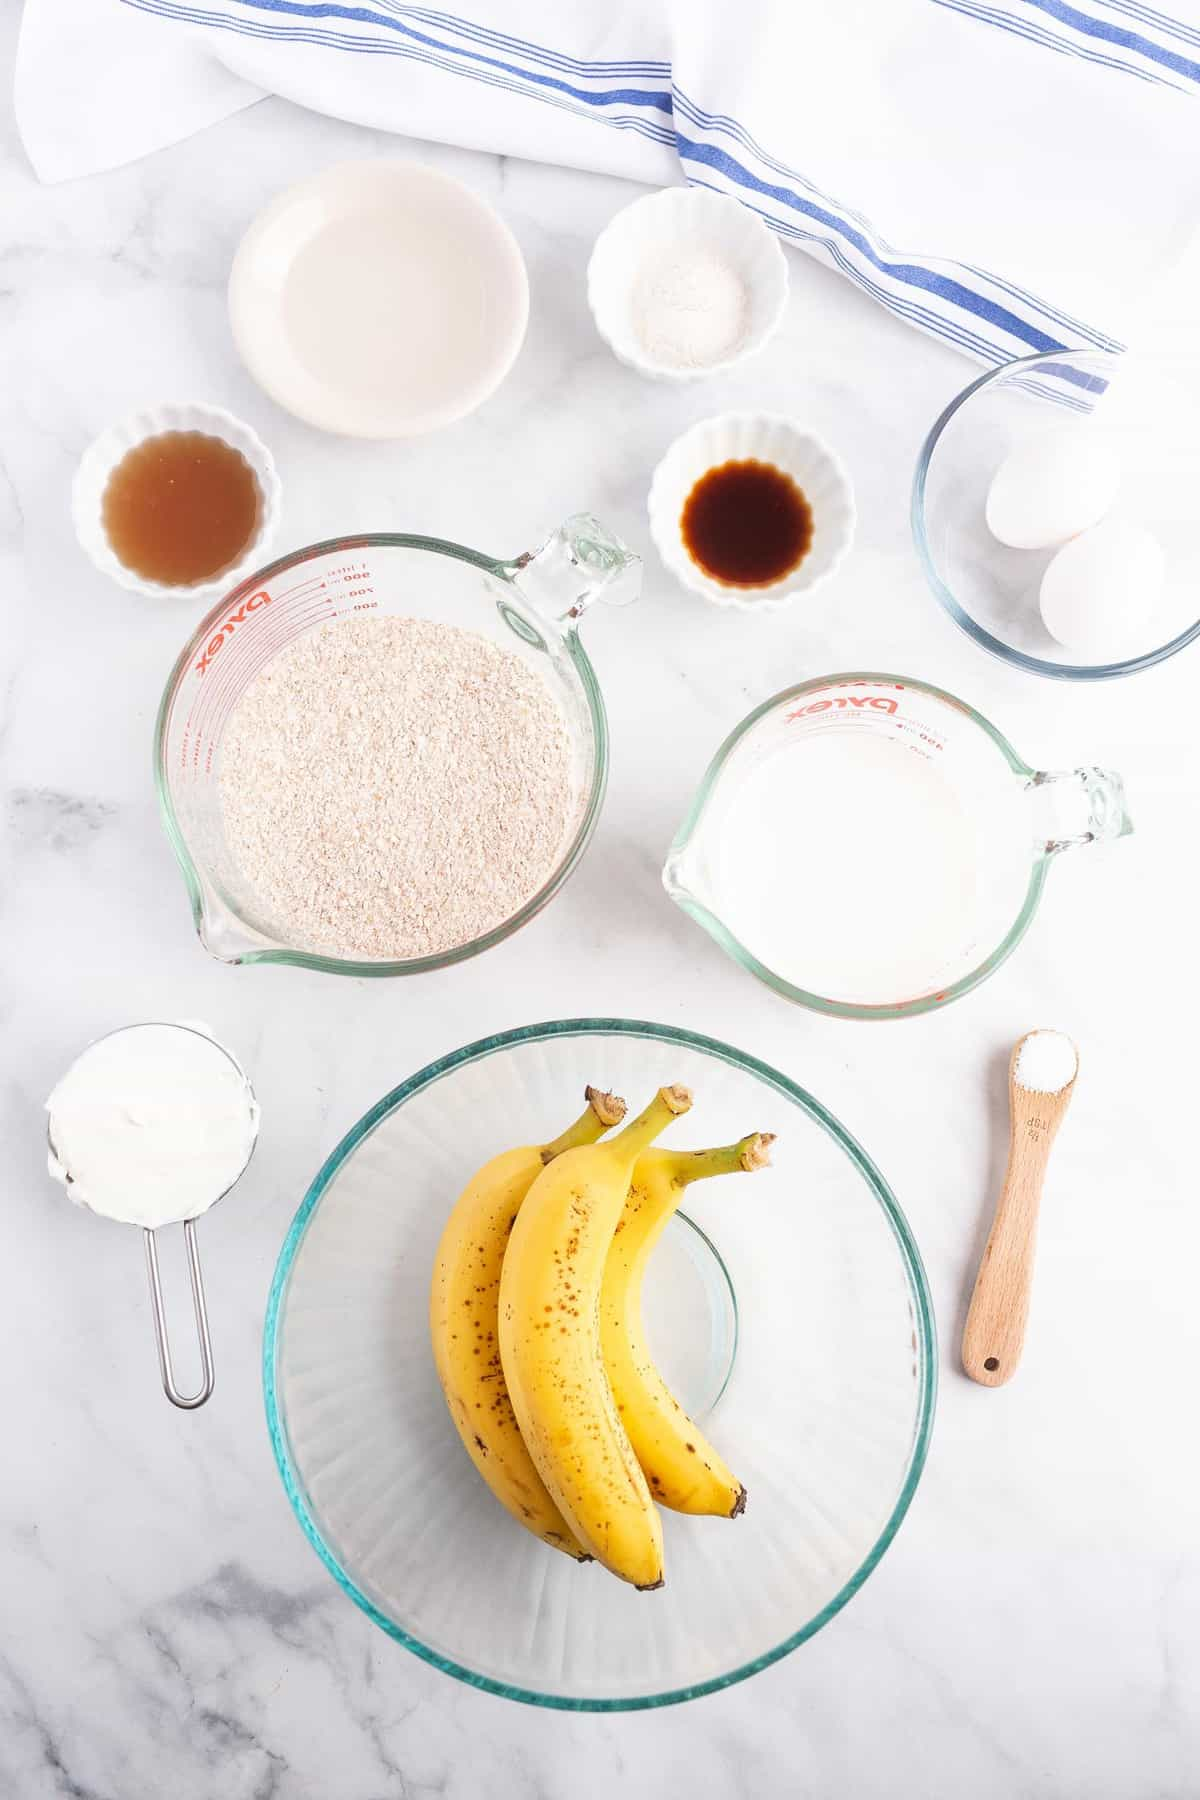 Overhead view of small glass bowls full of ingredients, including bananas, whole wheat flour, eggs, and more.